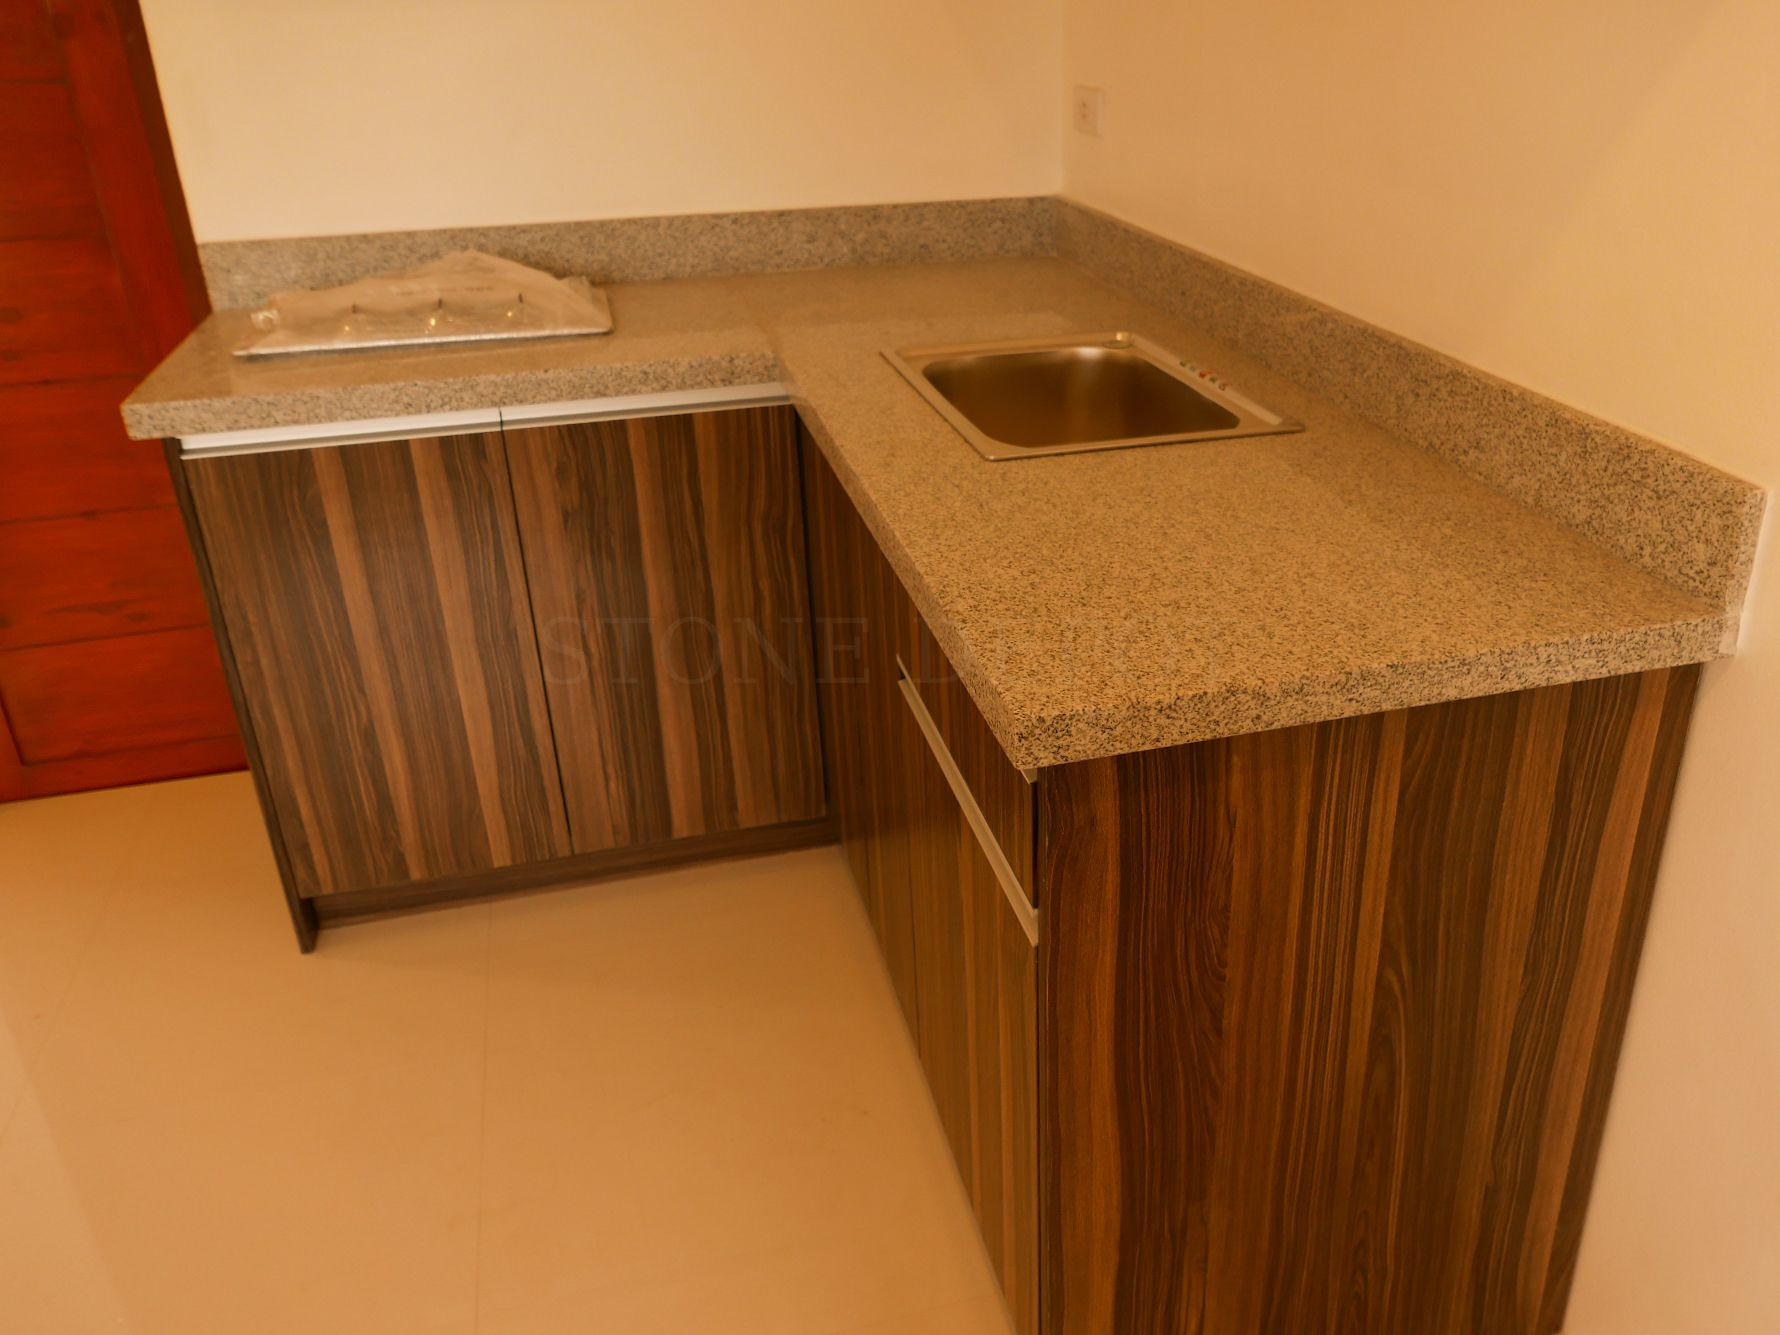 An L Shaped Salt And Pepper Granite Countertop With A Laminated Eased Edge Profile And A 4 Backspla Granite Countertop Edges Granite Countertops Countertops